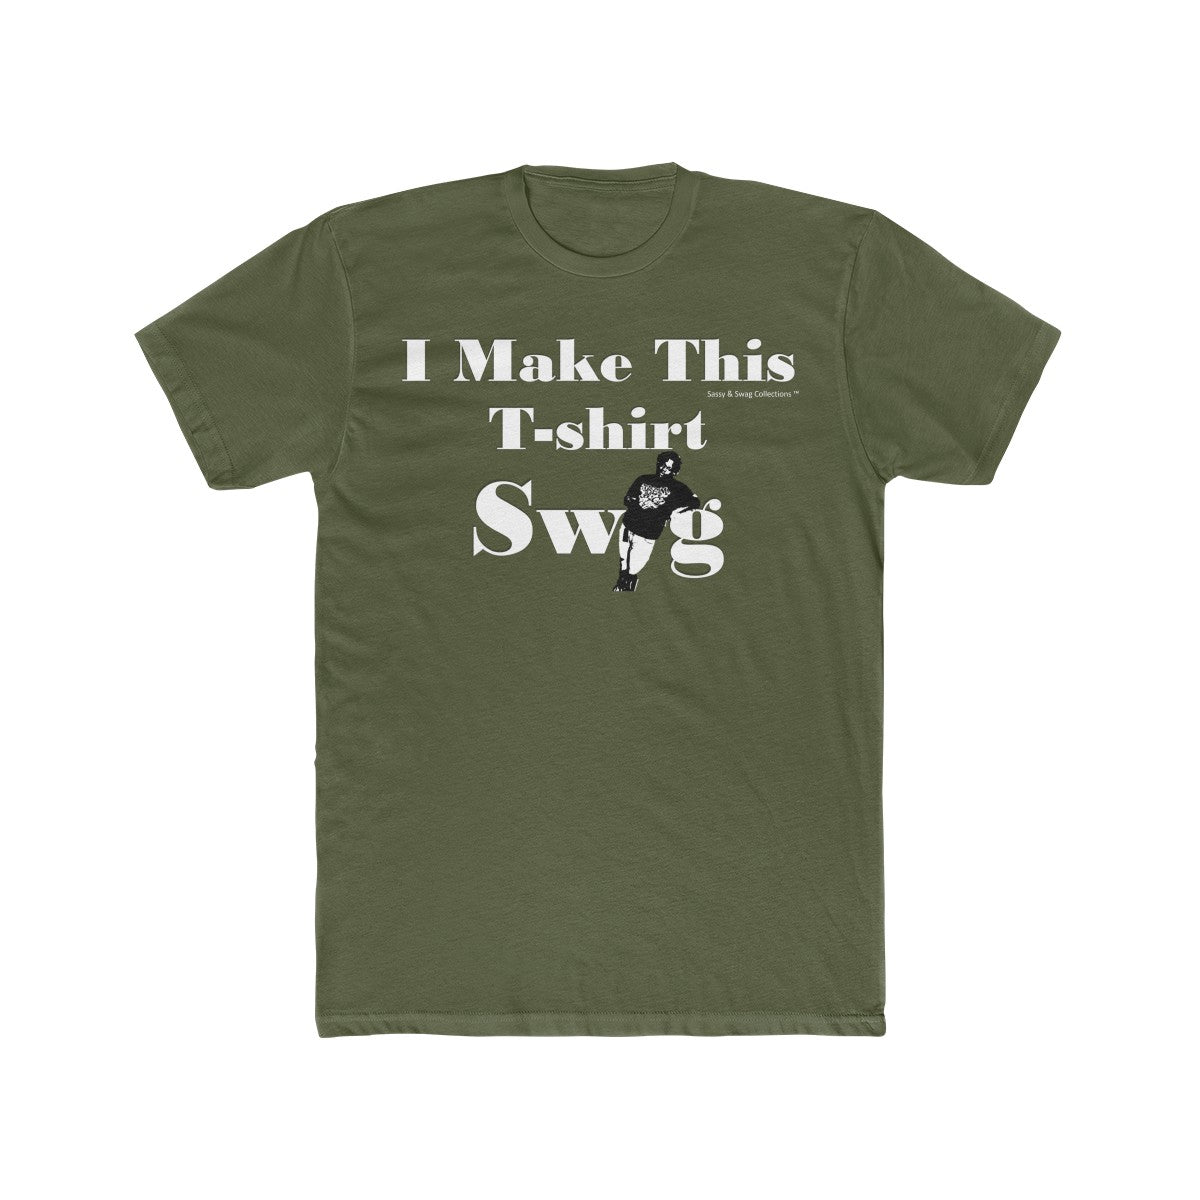 Sassy & Swag Collections - I Make This T-shirt Swag Men's Cotton Crew Tee